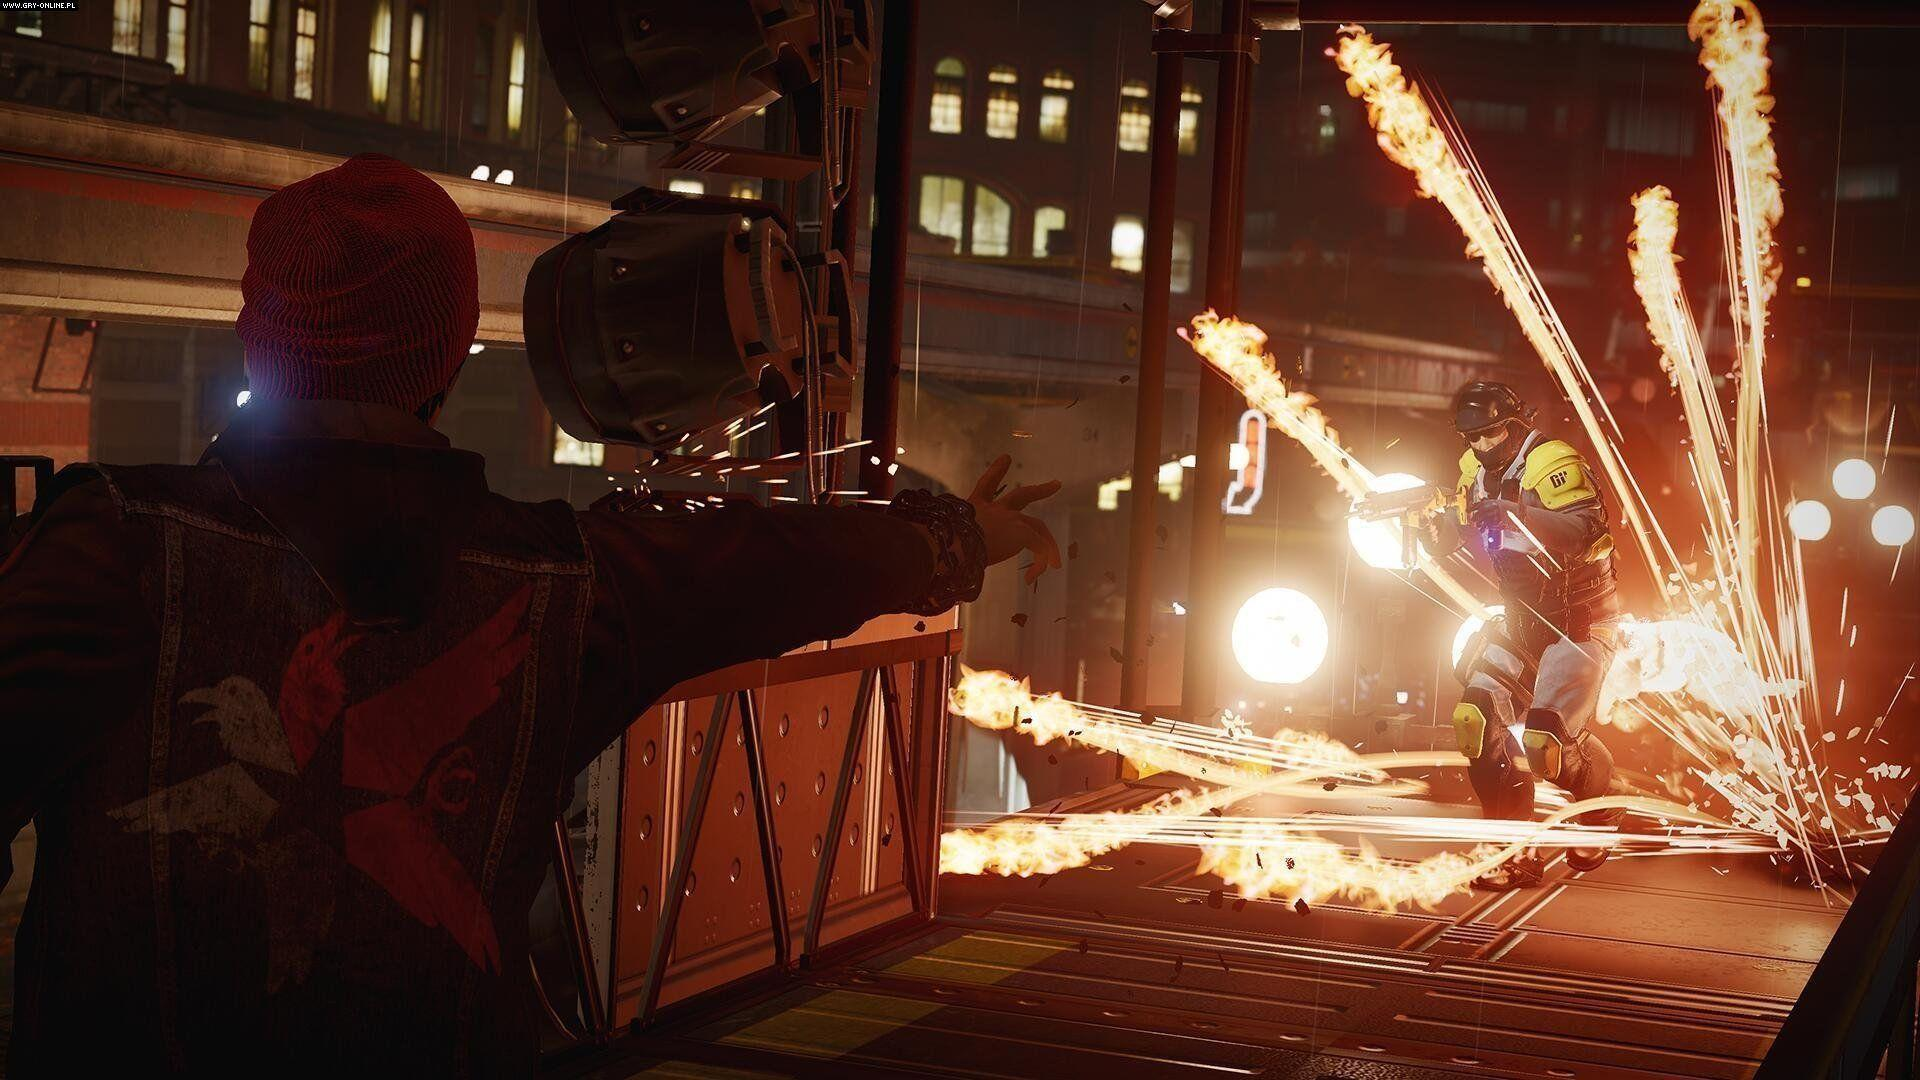 63 InFAMOUS: Second Son HD Wallpapers | Backgrounds - Wallpaper Abyss